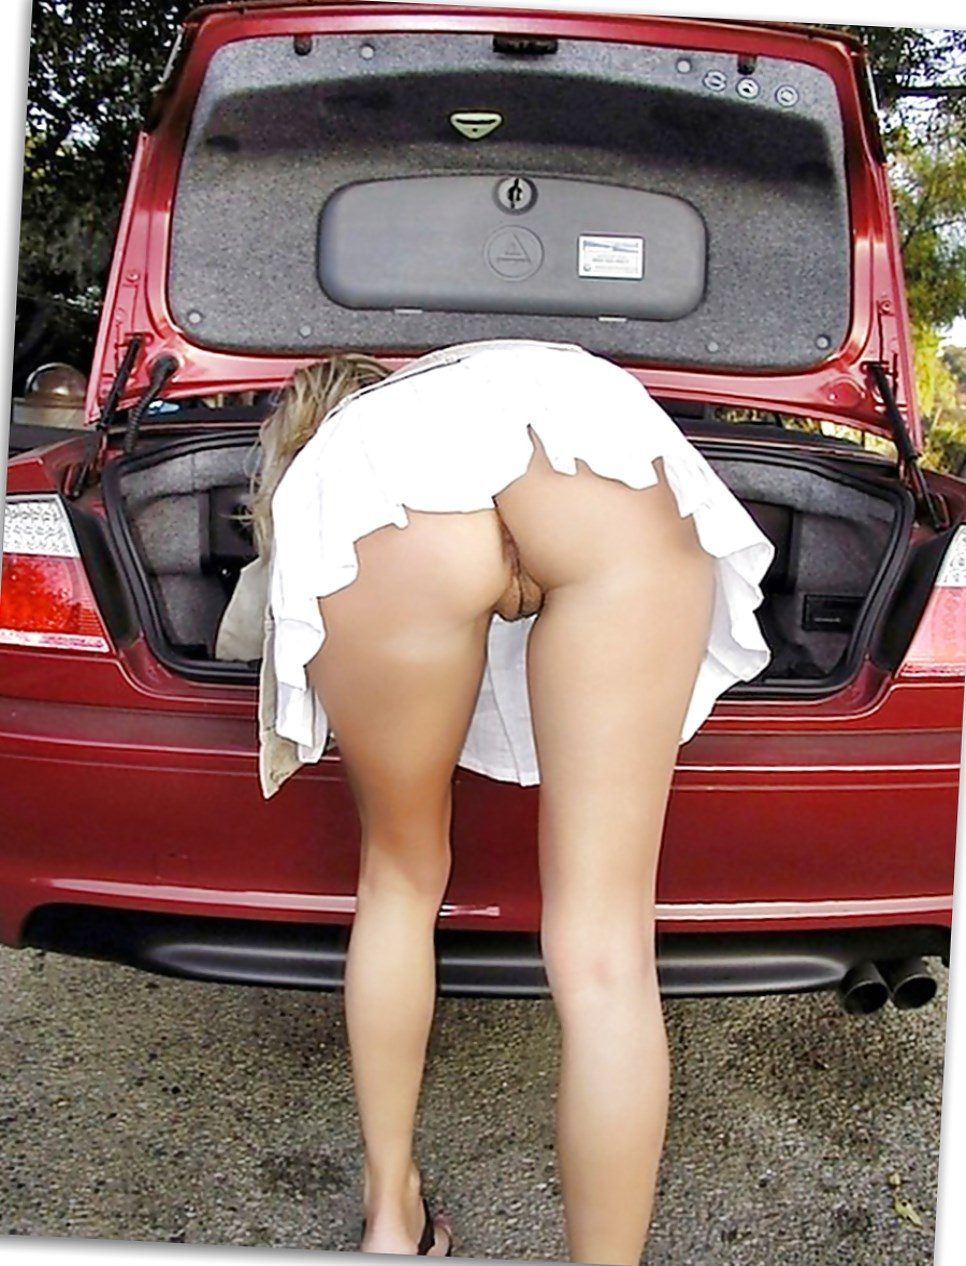 Bending in a short skirt while loading in a car boot and flashing her pussy and legs